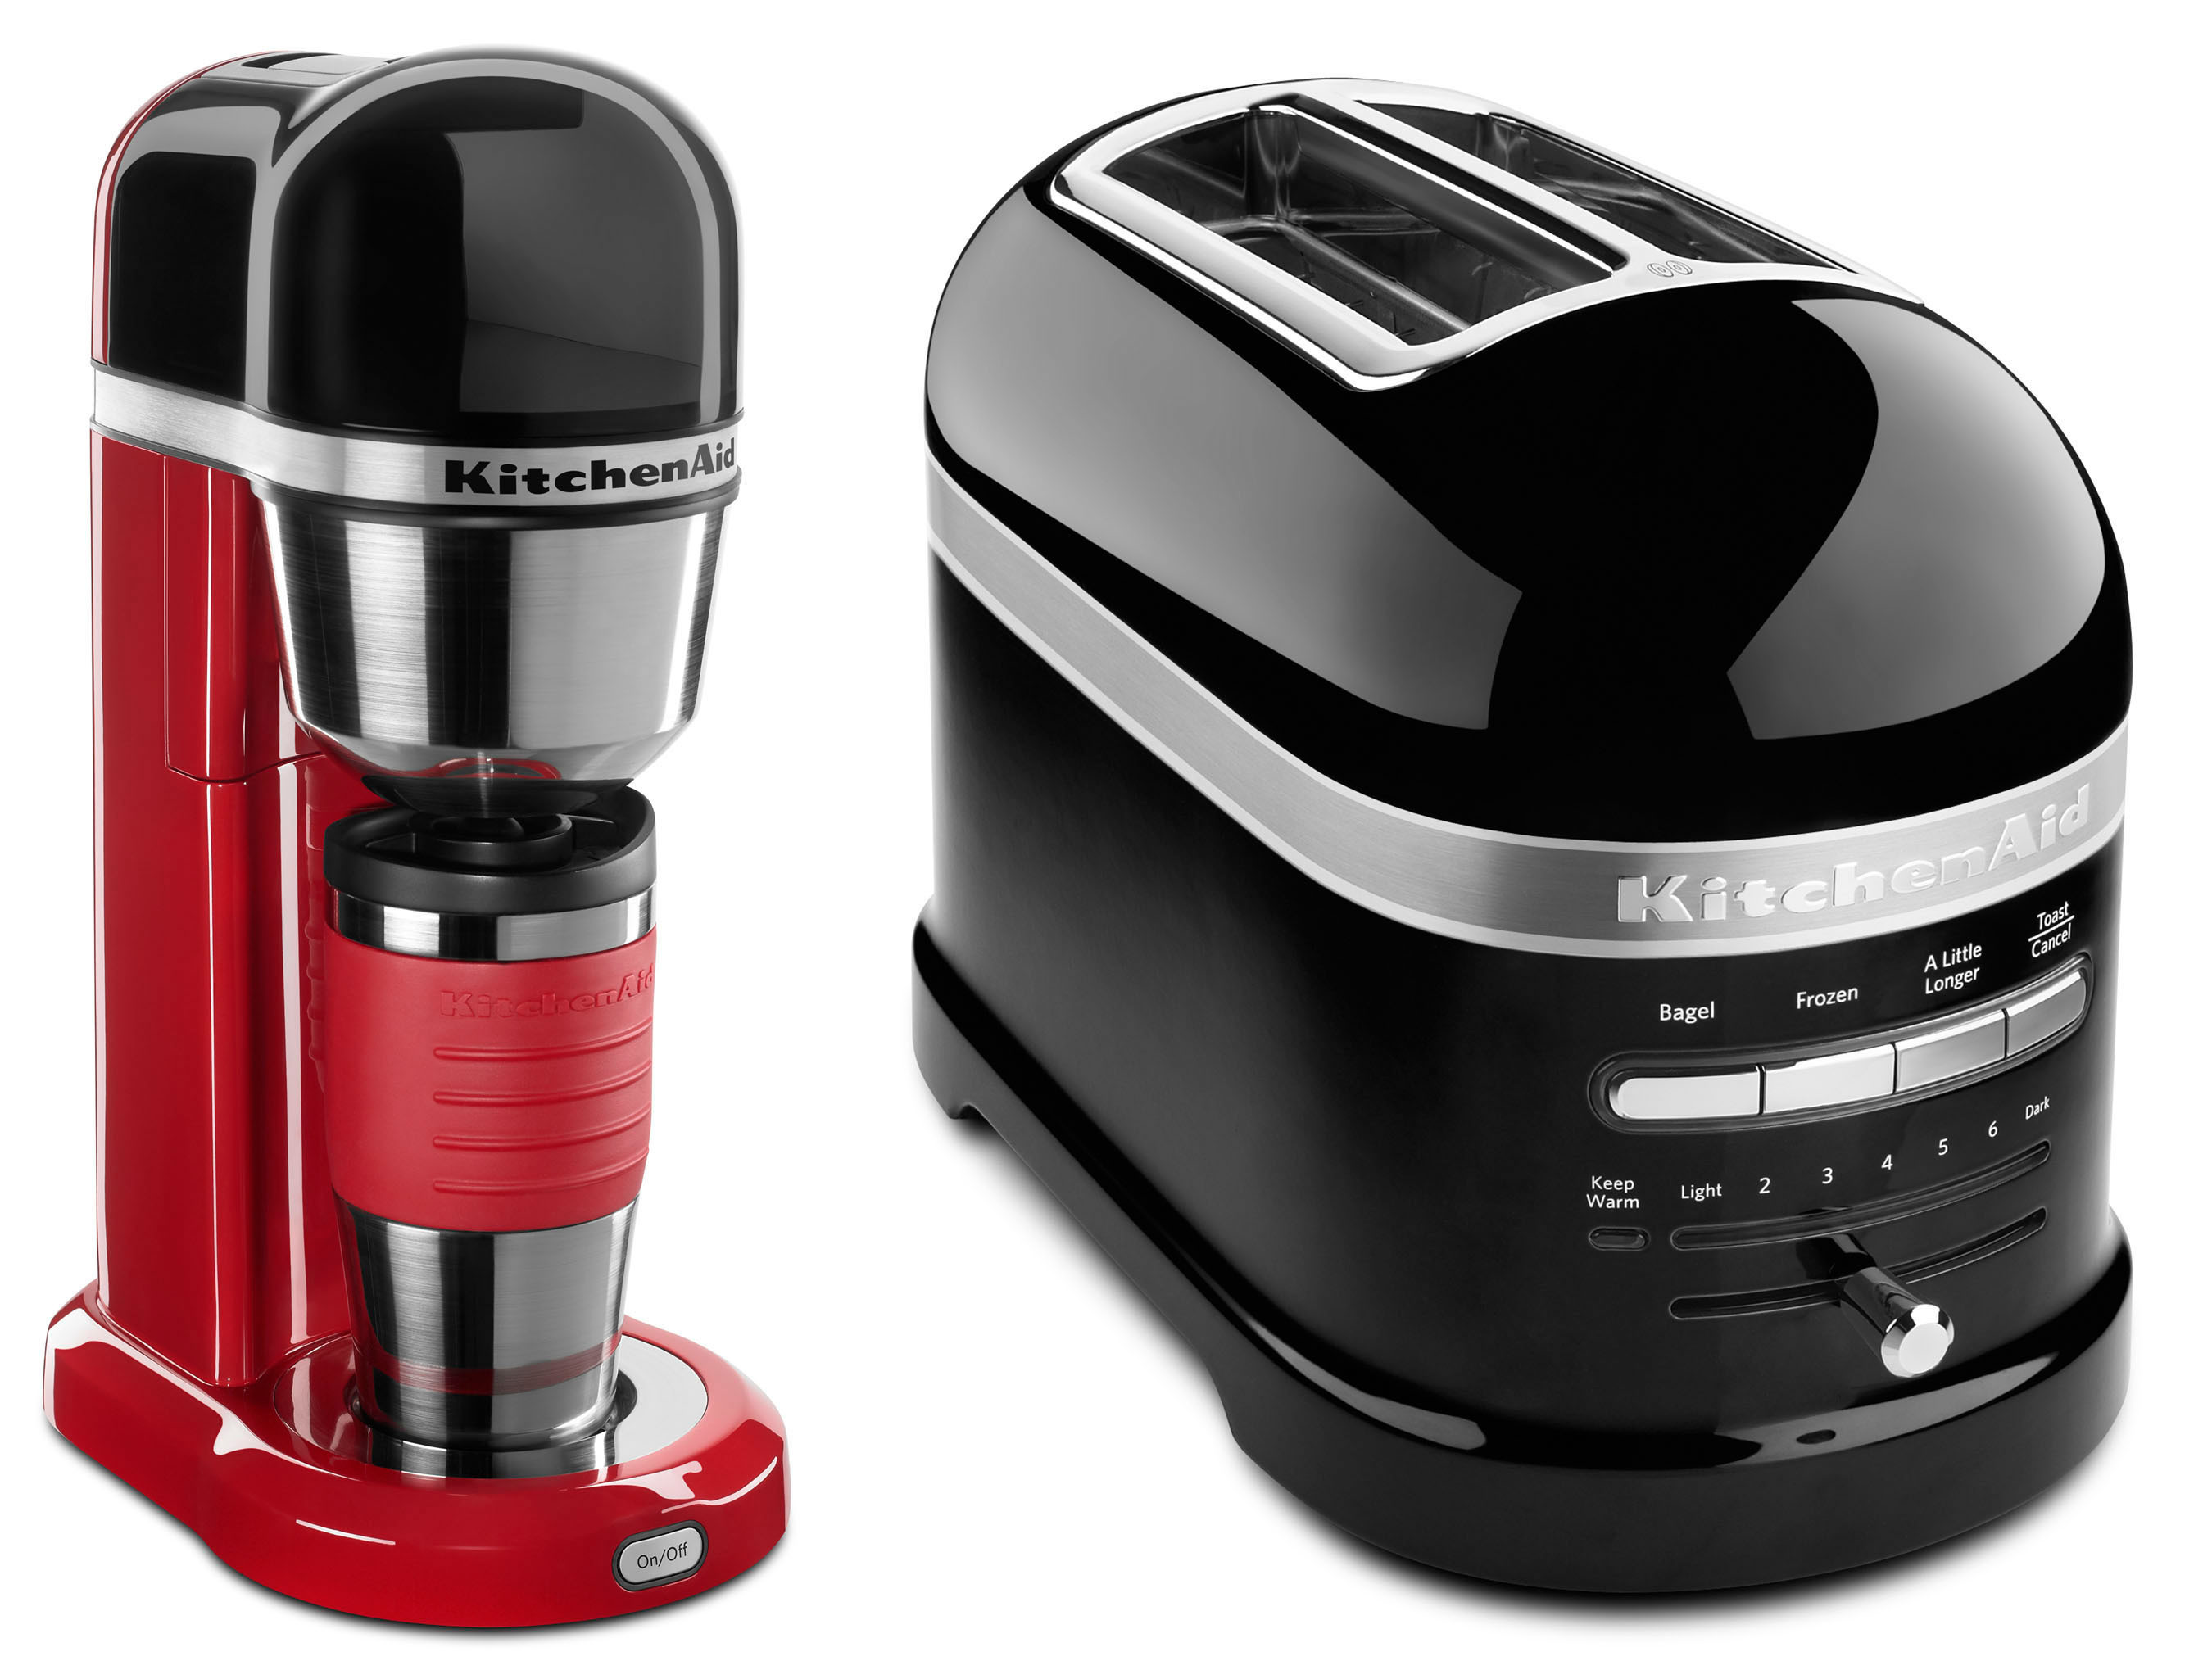 KITCHENAID PERSONAL COFFEE MAKER AND PRO LINE TOASTER www